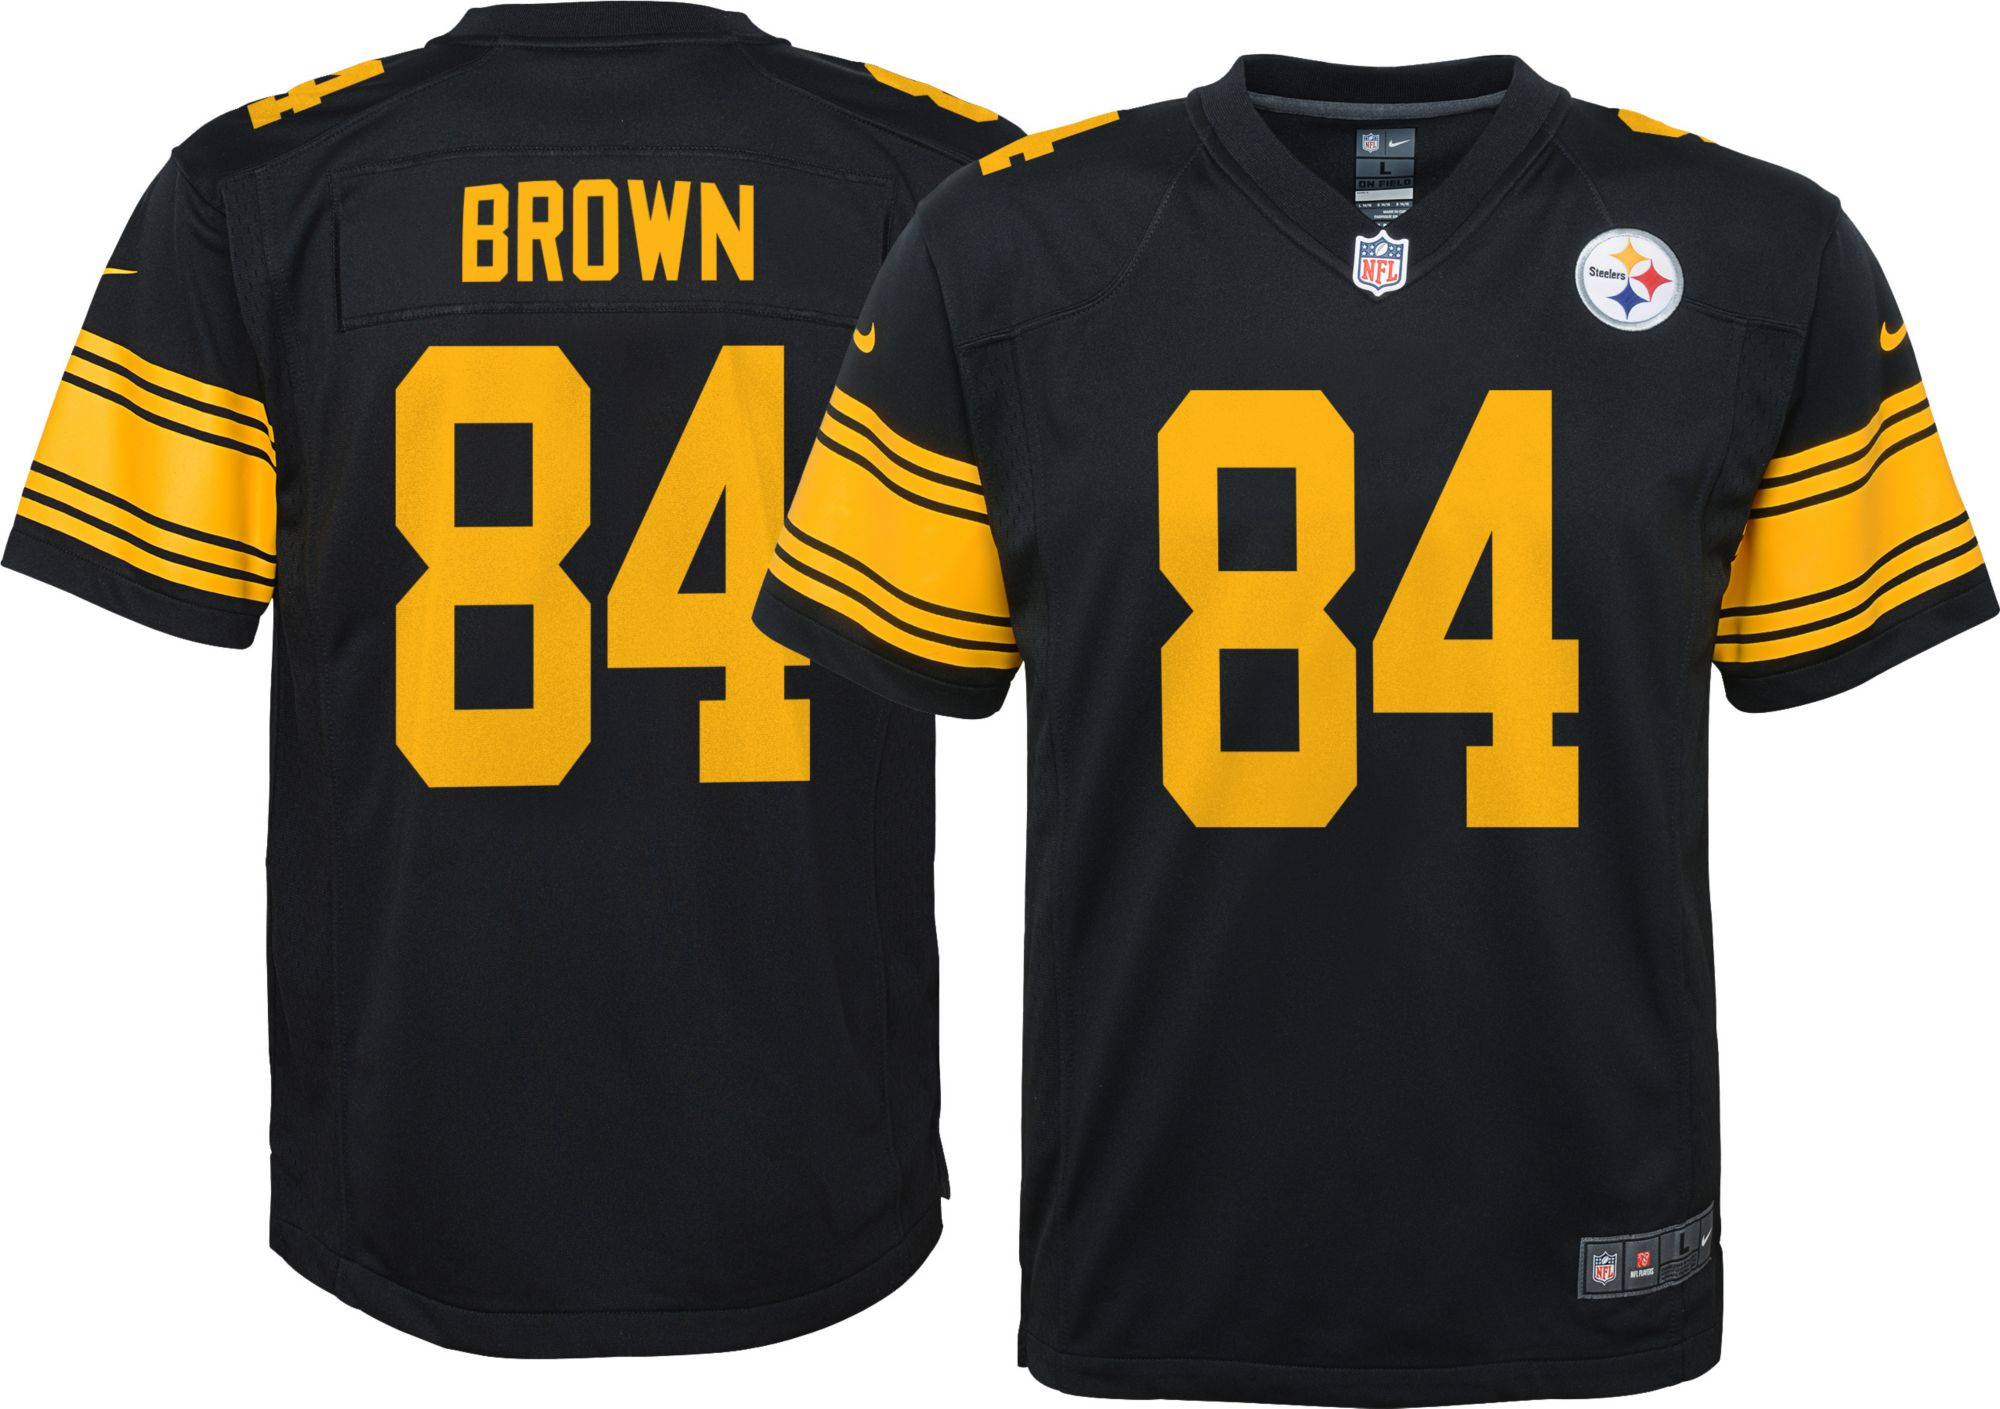 quality design 2d8a6 ed7ad uk clay matthews cleveland browns jersey 6274b 3f8ef